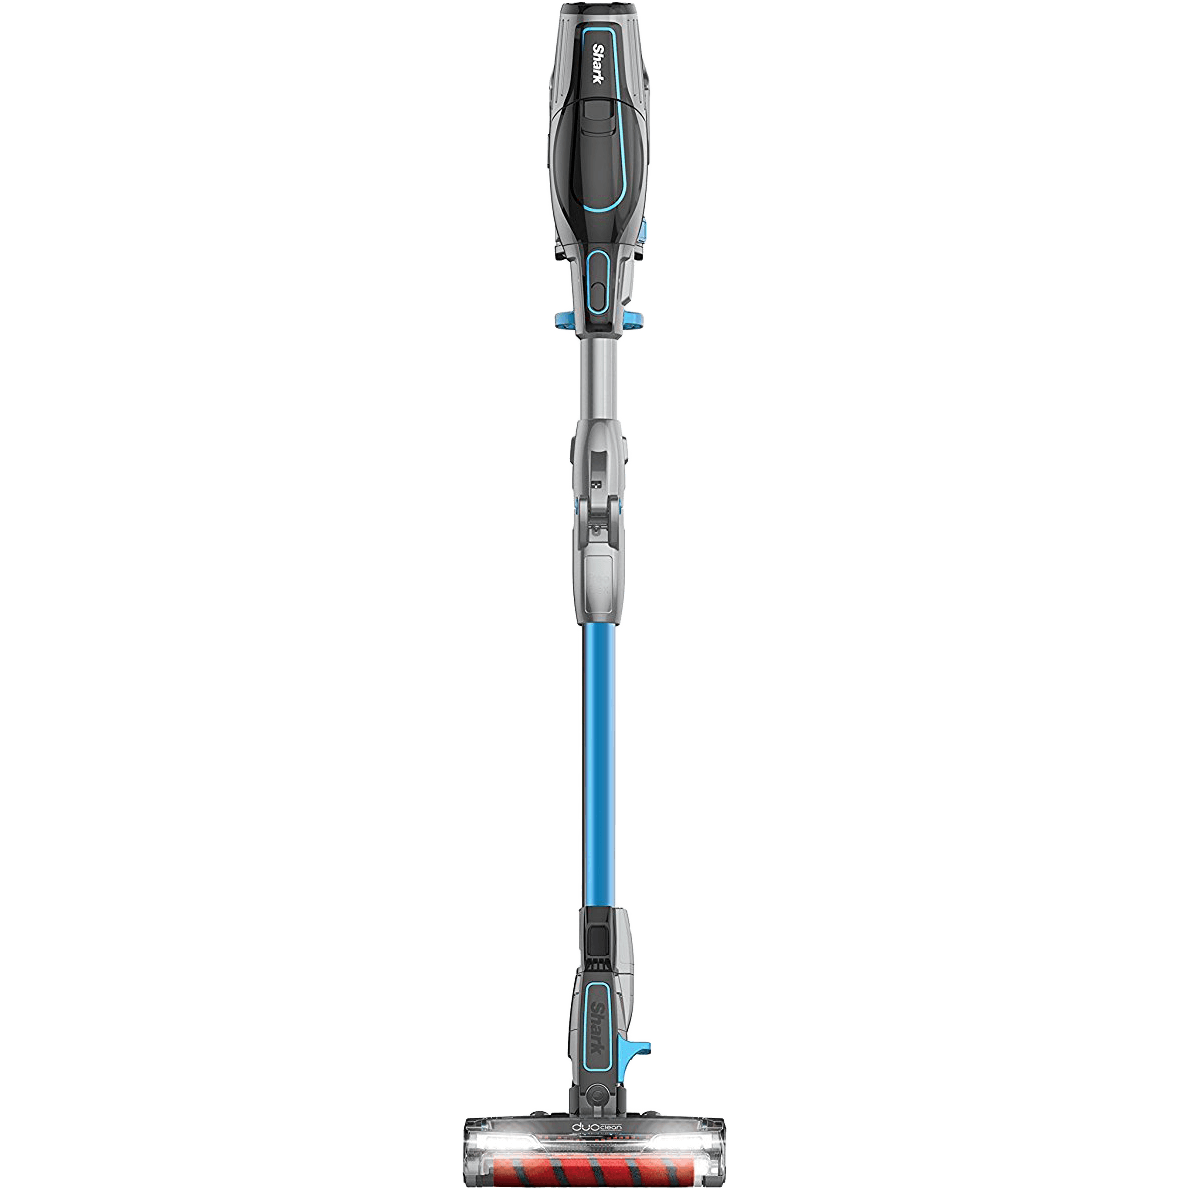 Buy Cheap Shark If251 Ionflex 2x Duoclean Cordless Ultra Light Vacuum In 2020 Vacuums Cordless Air Purifier